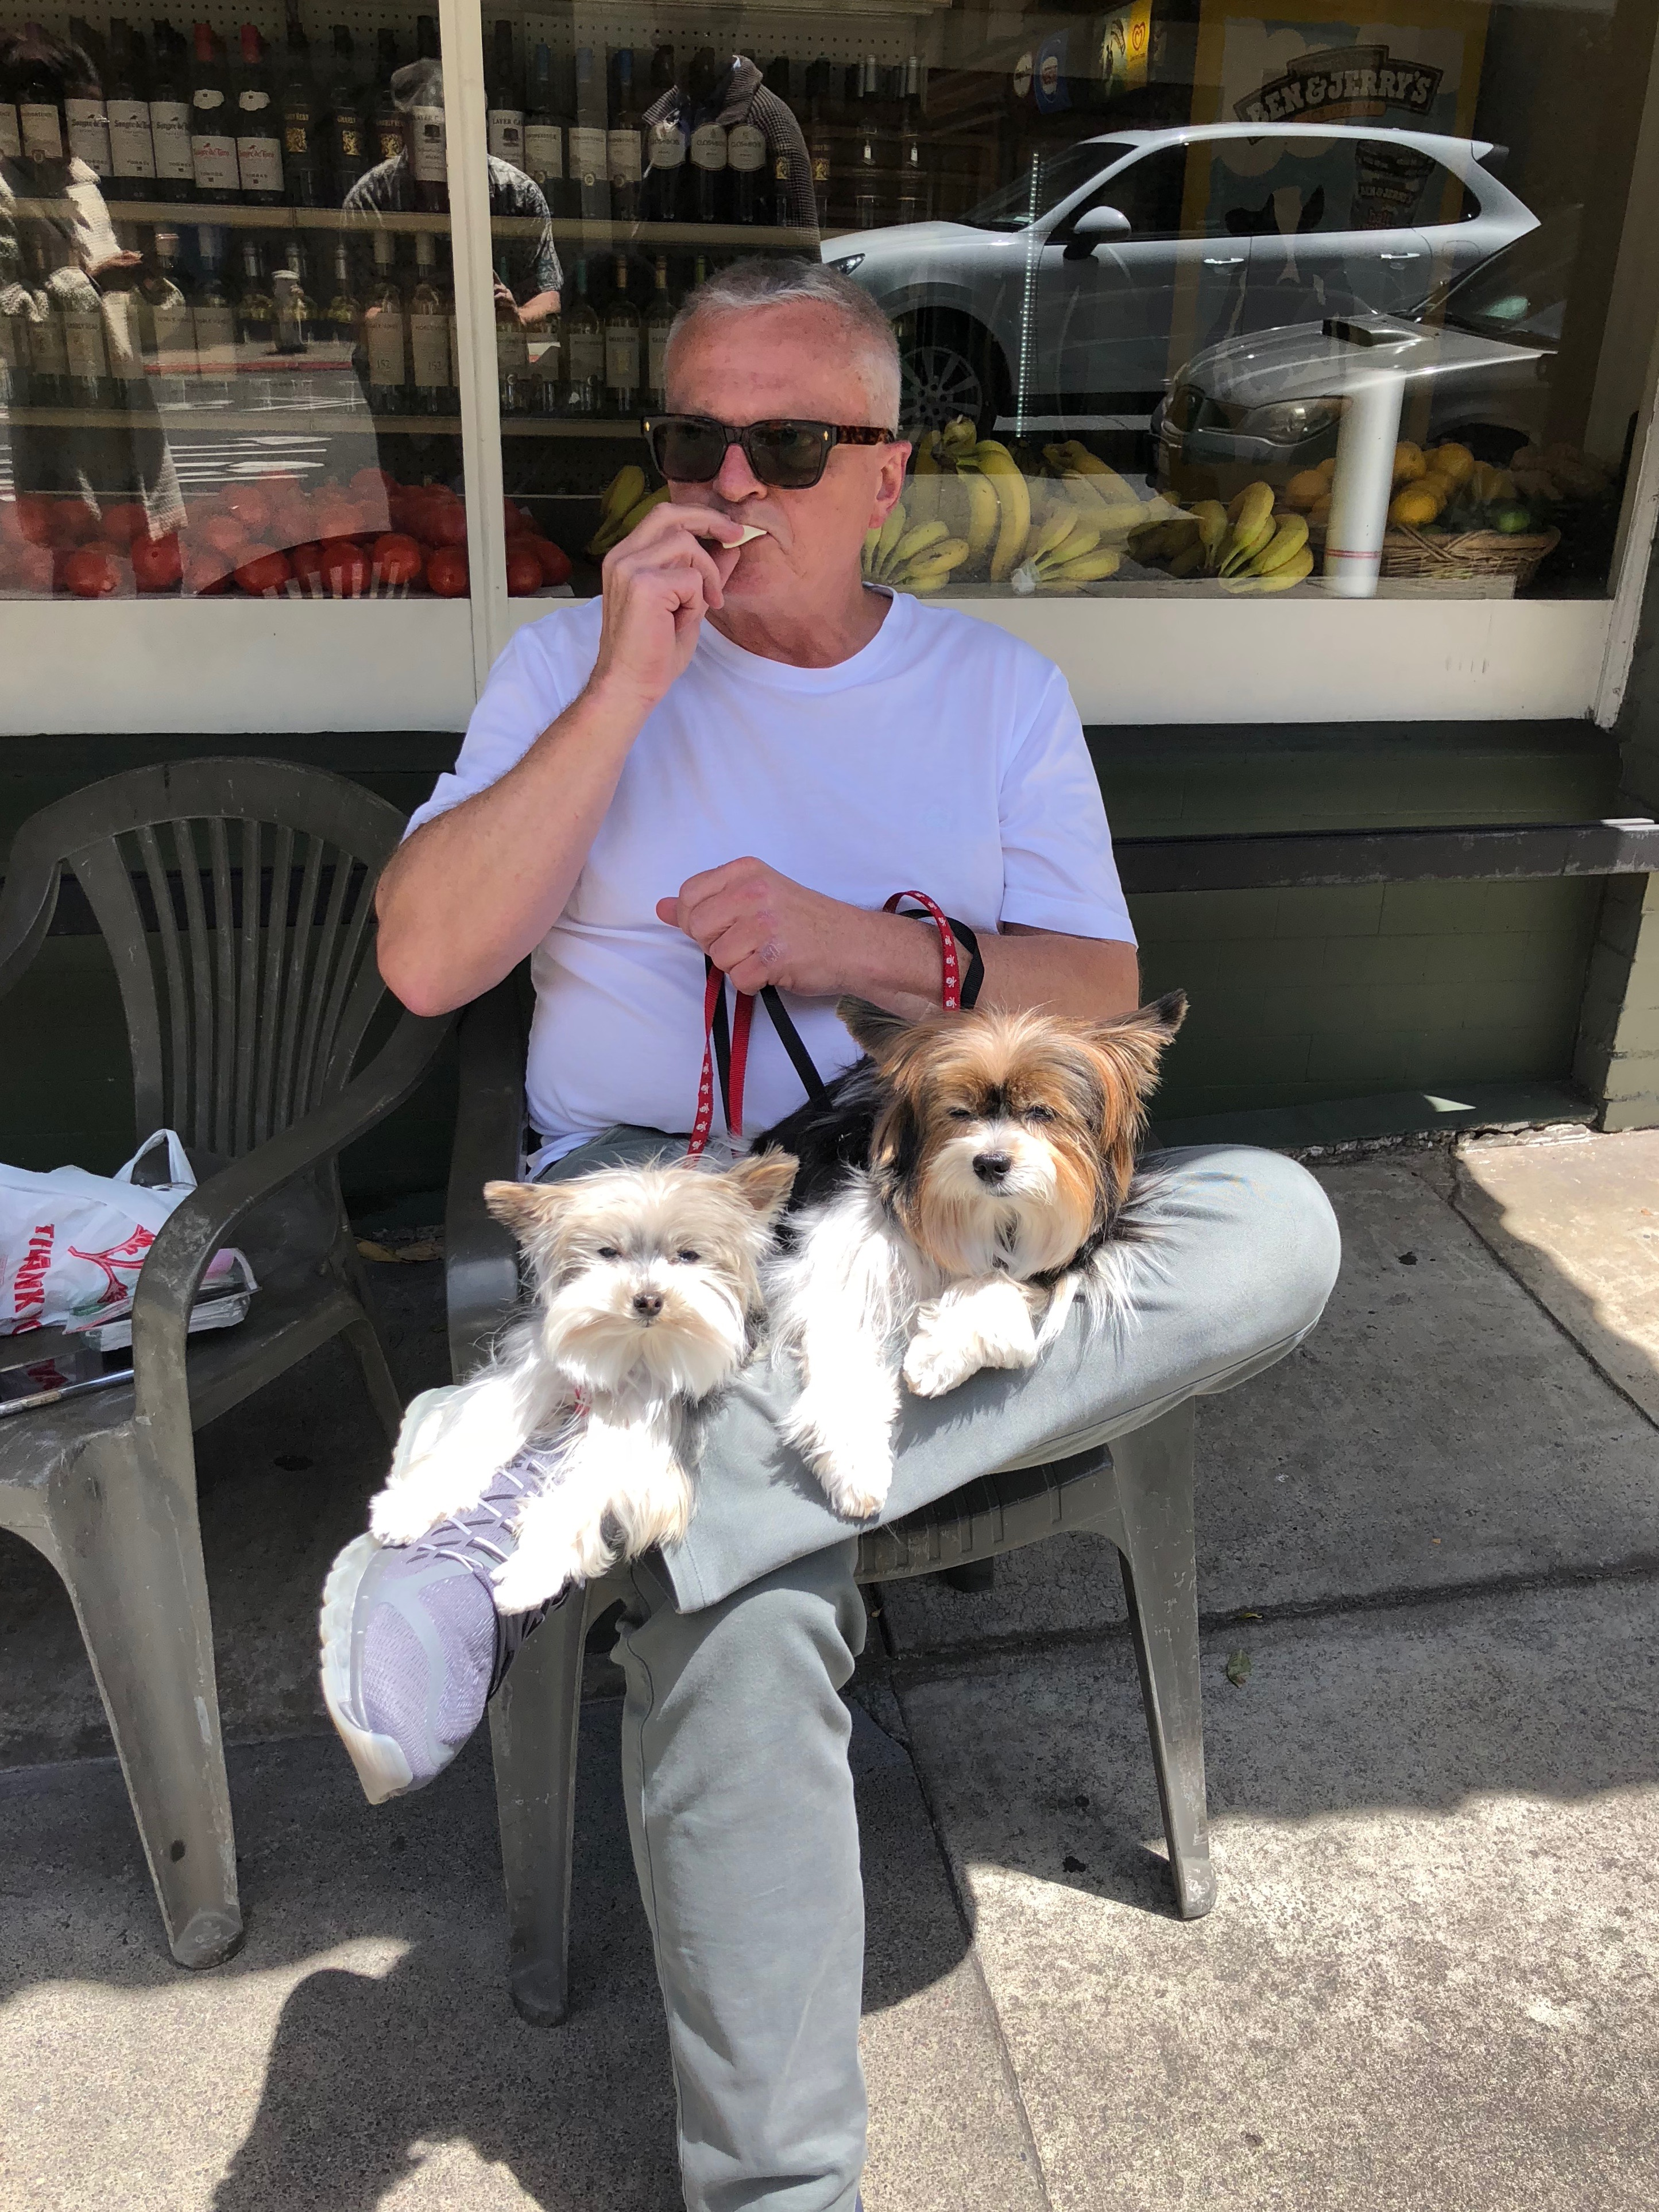 Man With Two Small Dogs In His Lap